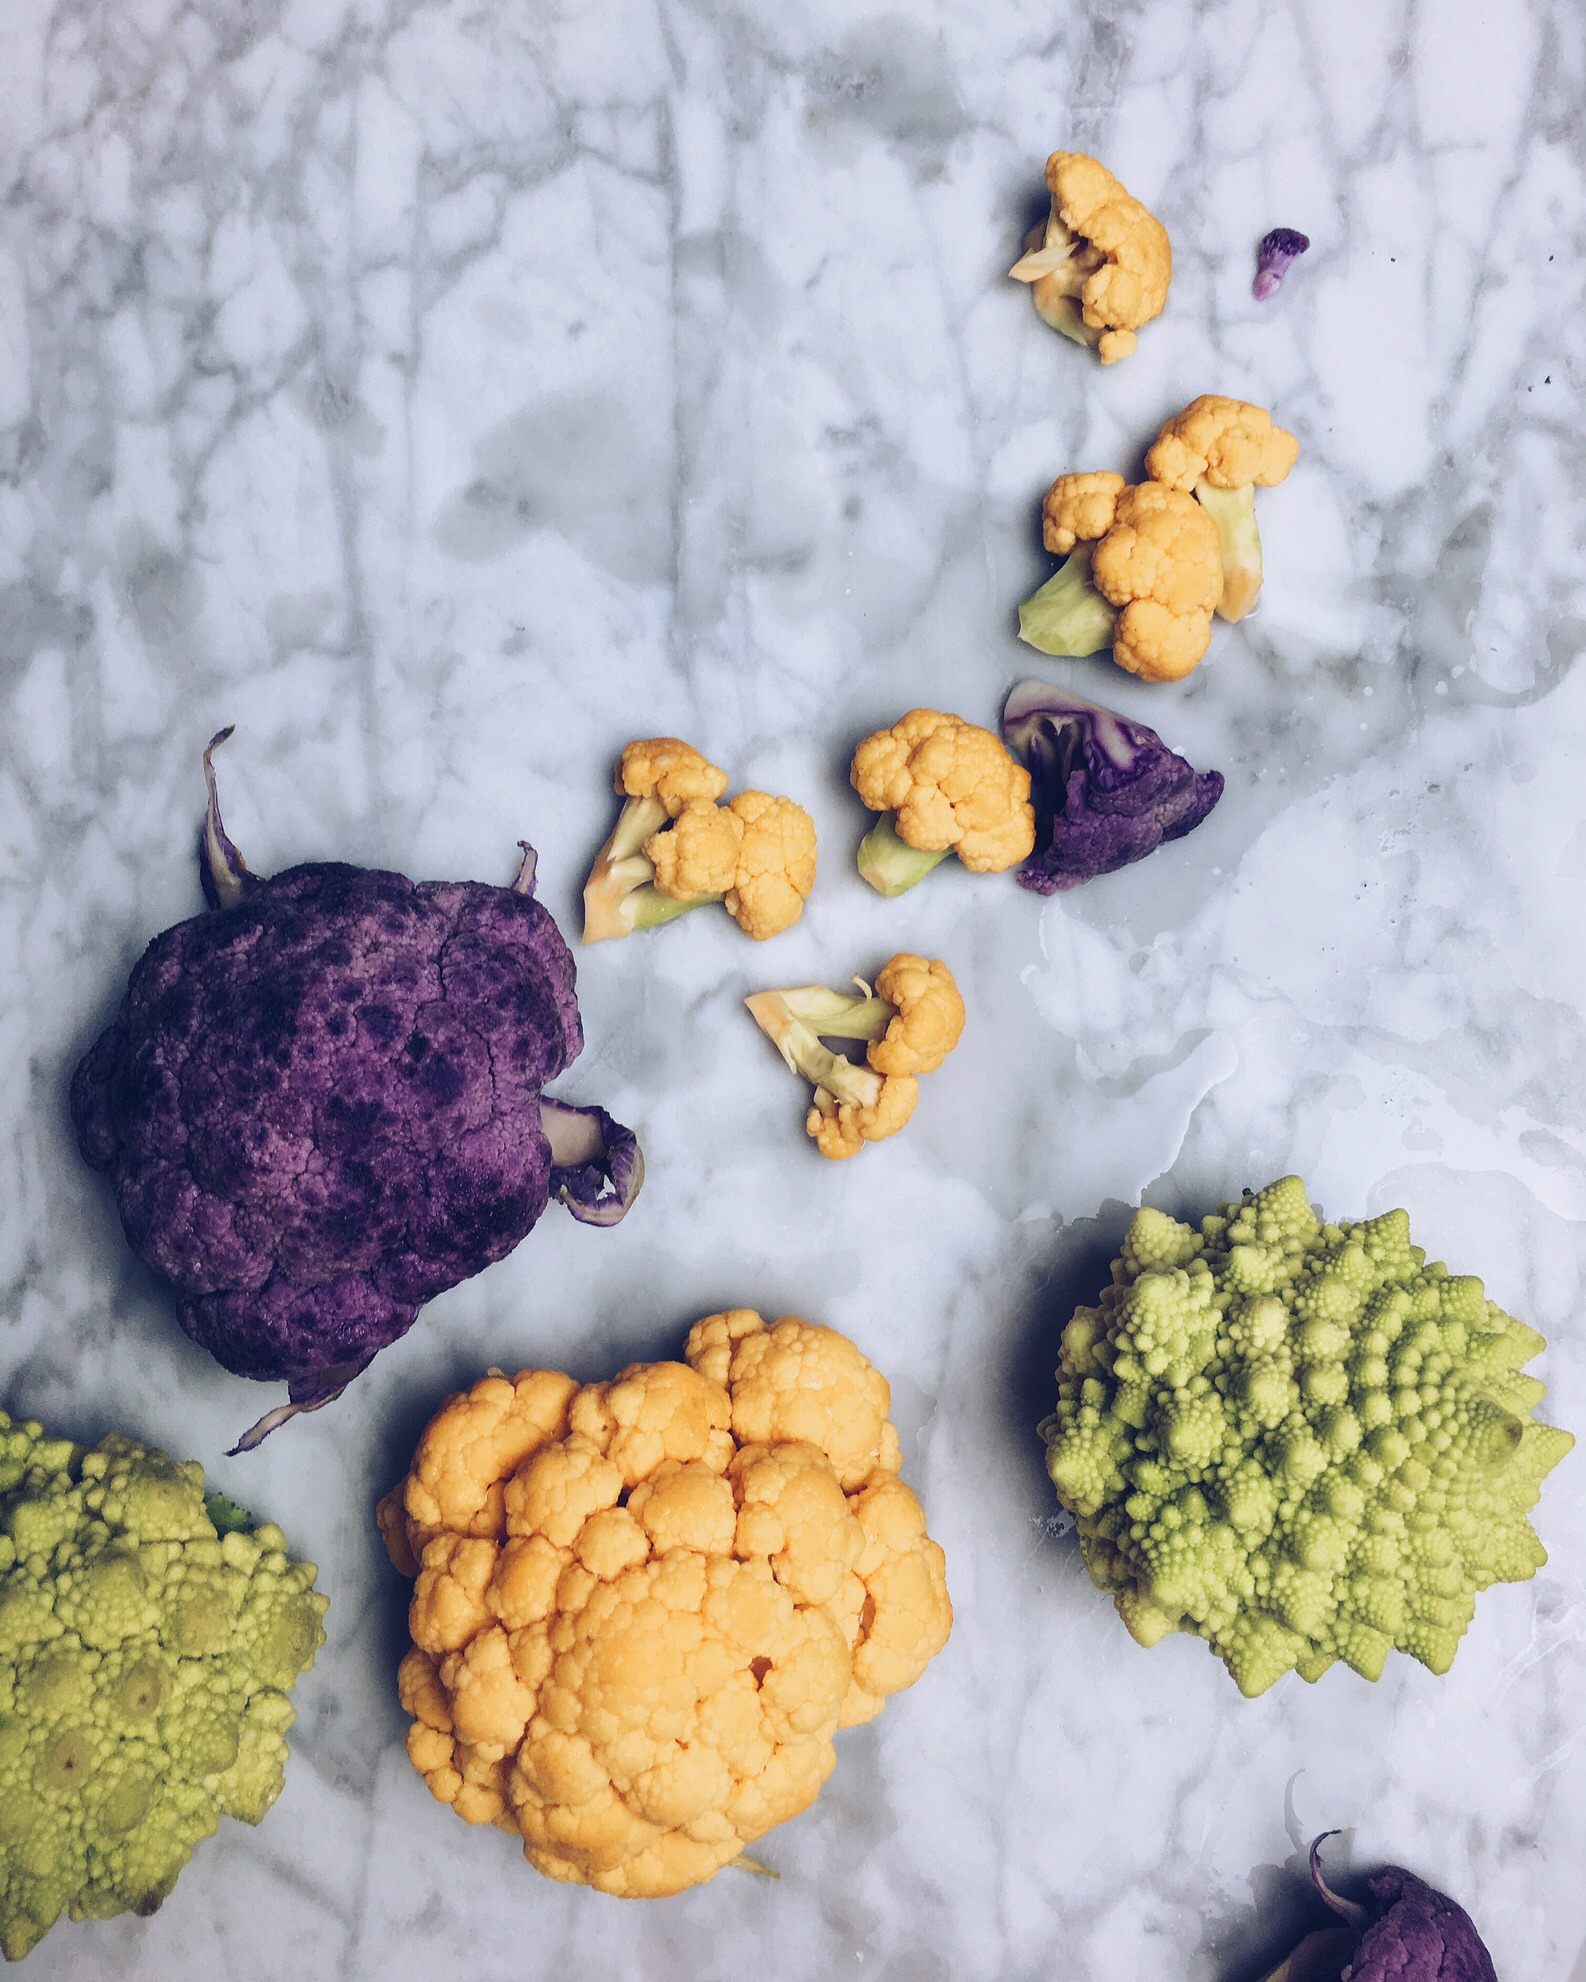 These color cauliflowers were in season, and cooks a lot faster so the texture remains without falling apart.